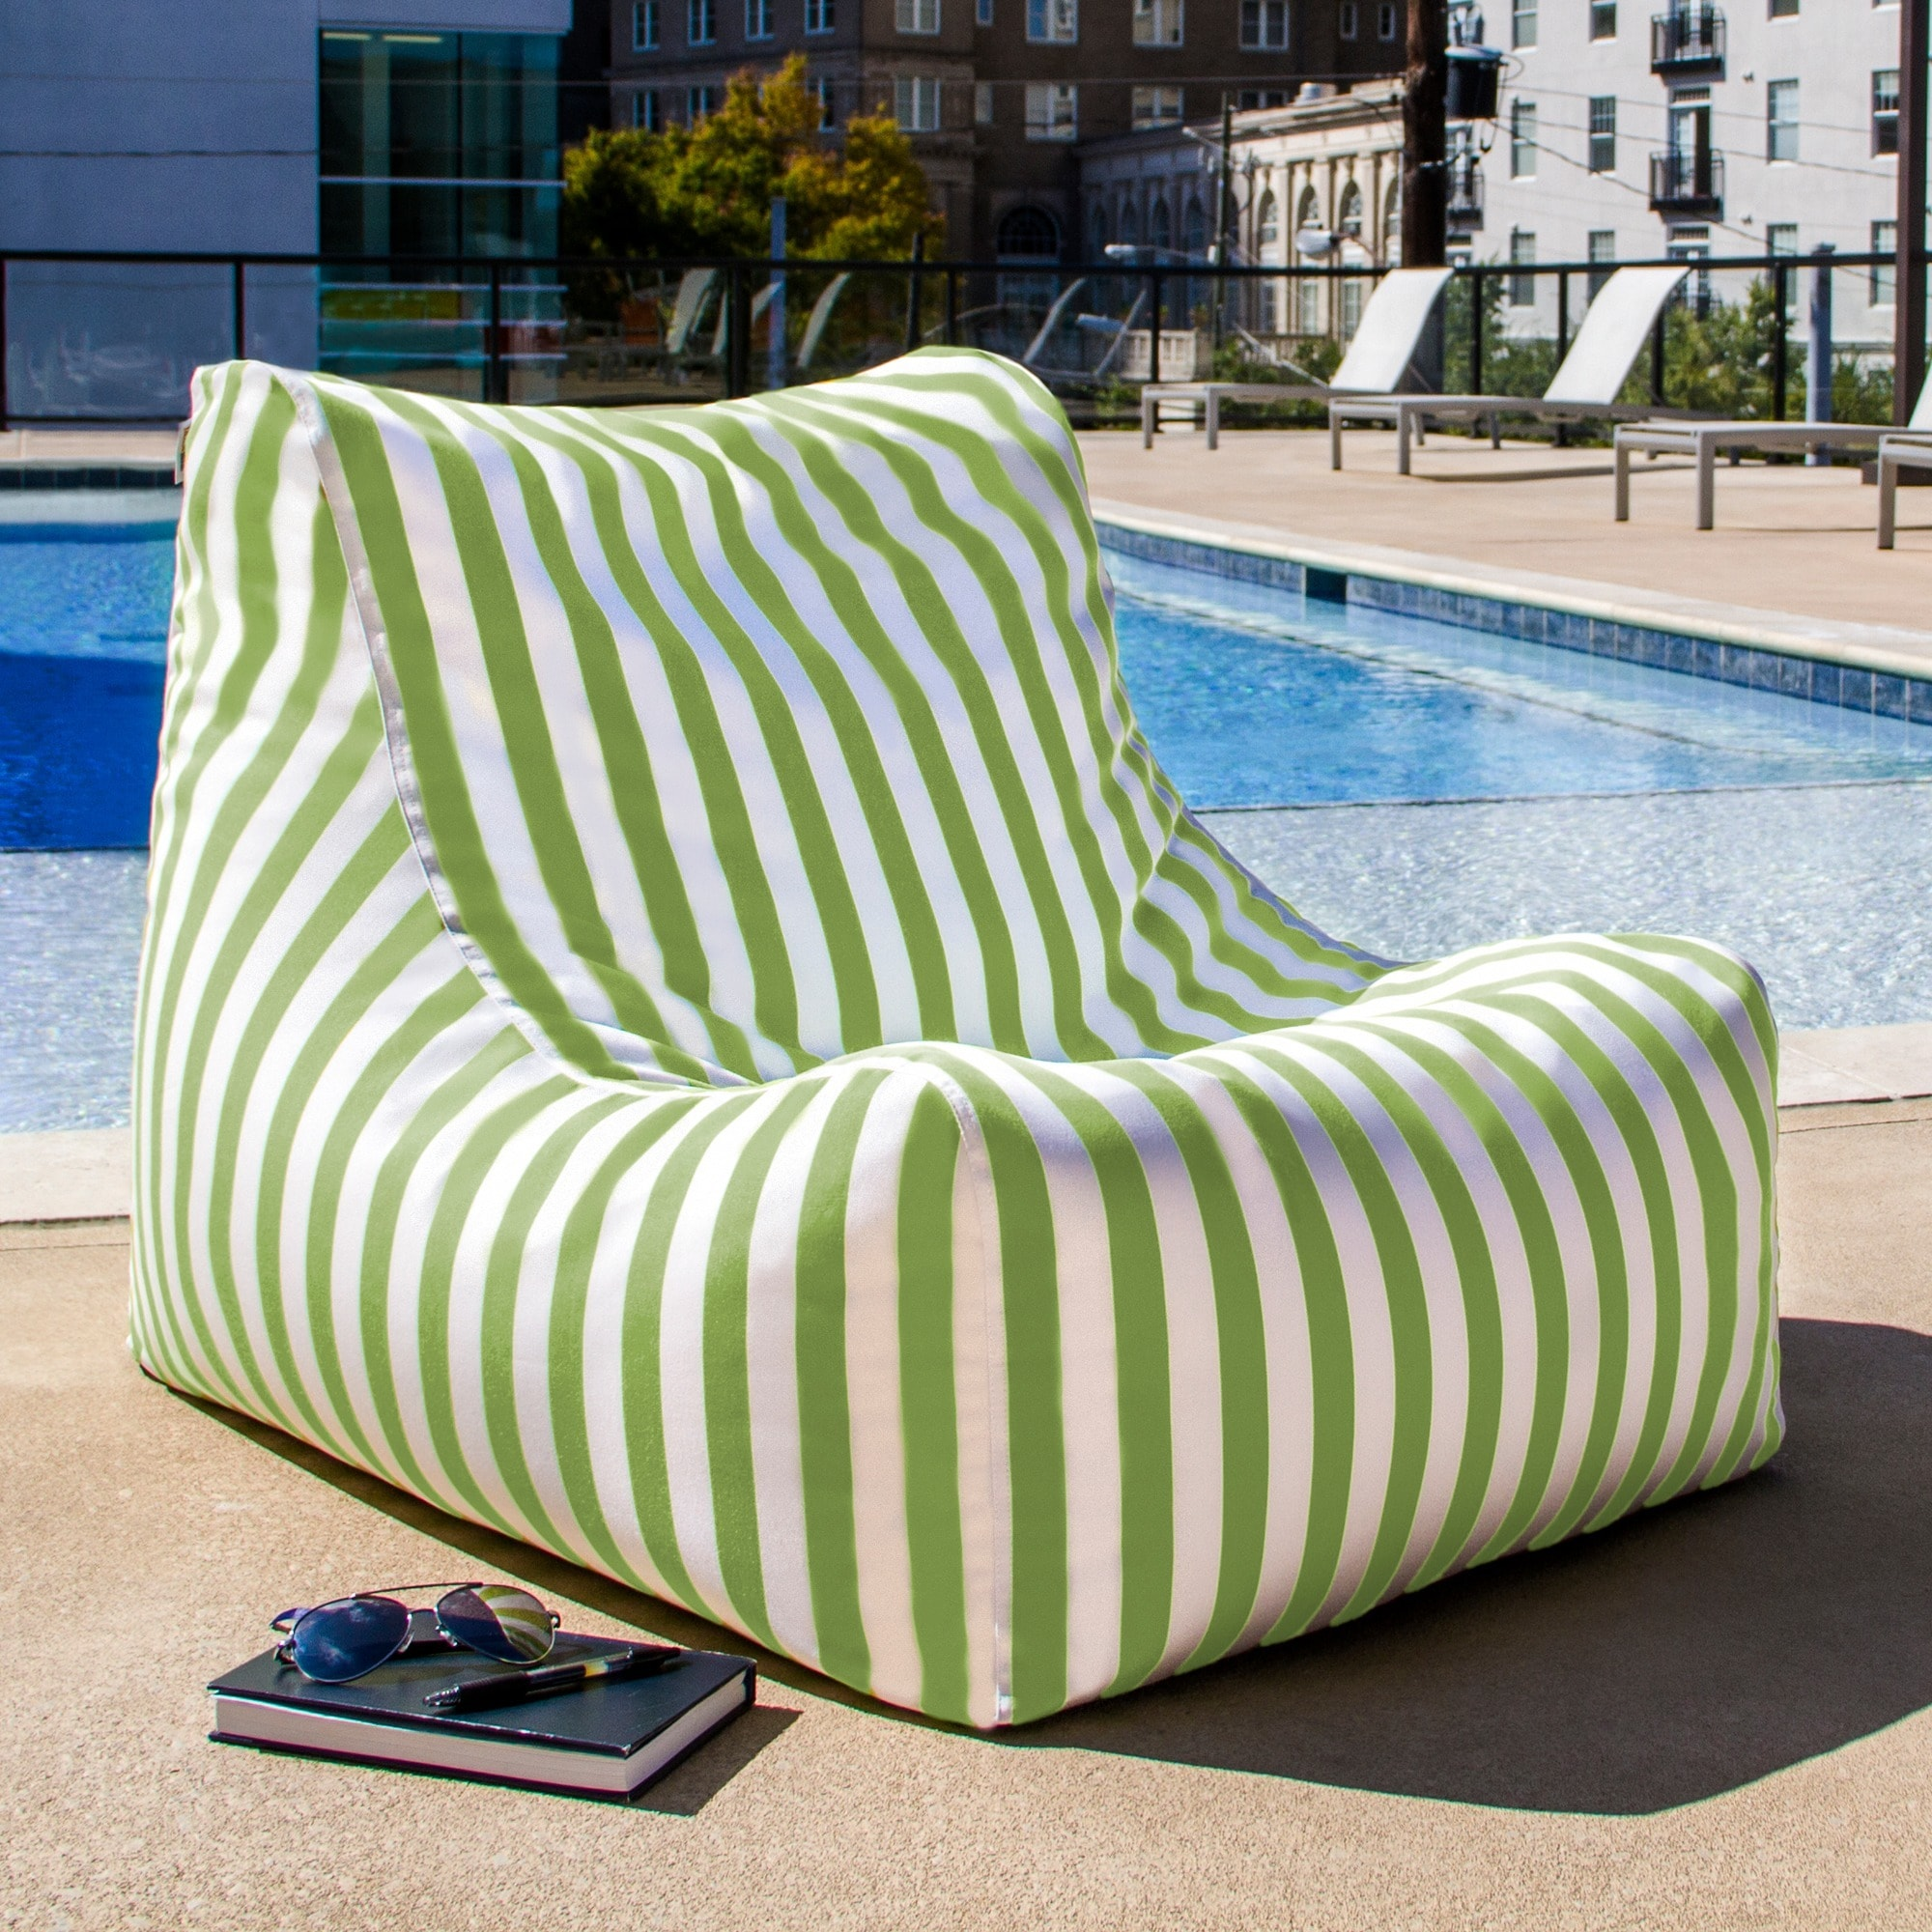 Outdoor Bean Bag Chairs Green Bean Bag Chair Outdoor In Door Best Cushion Ebay